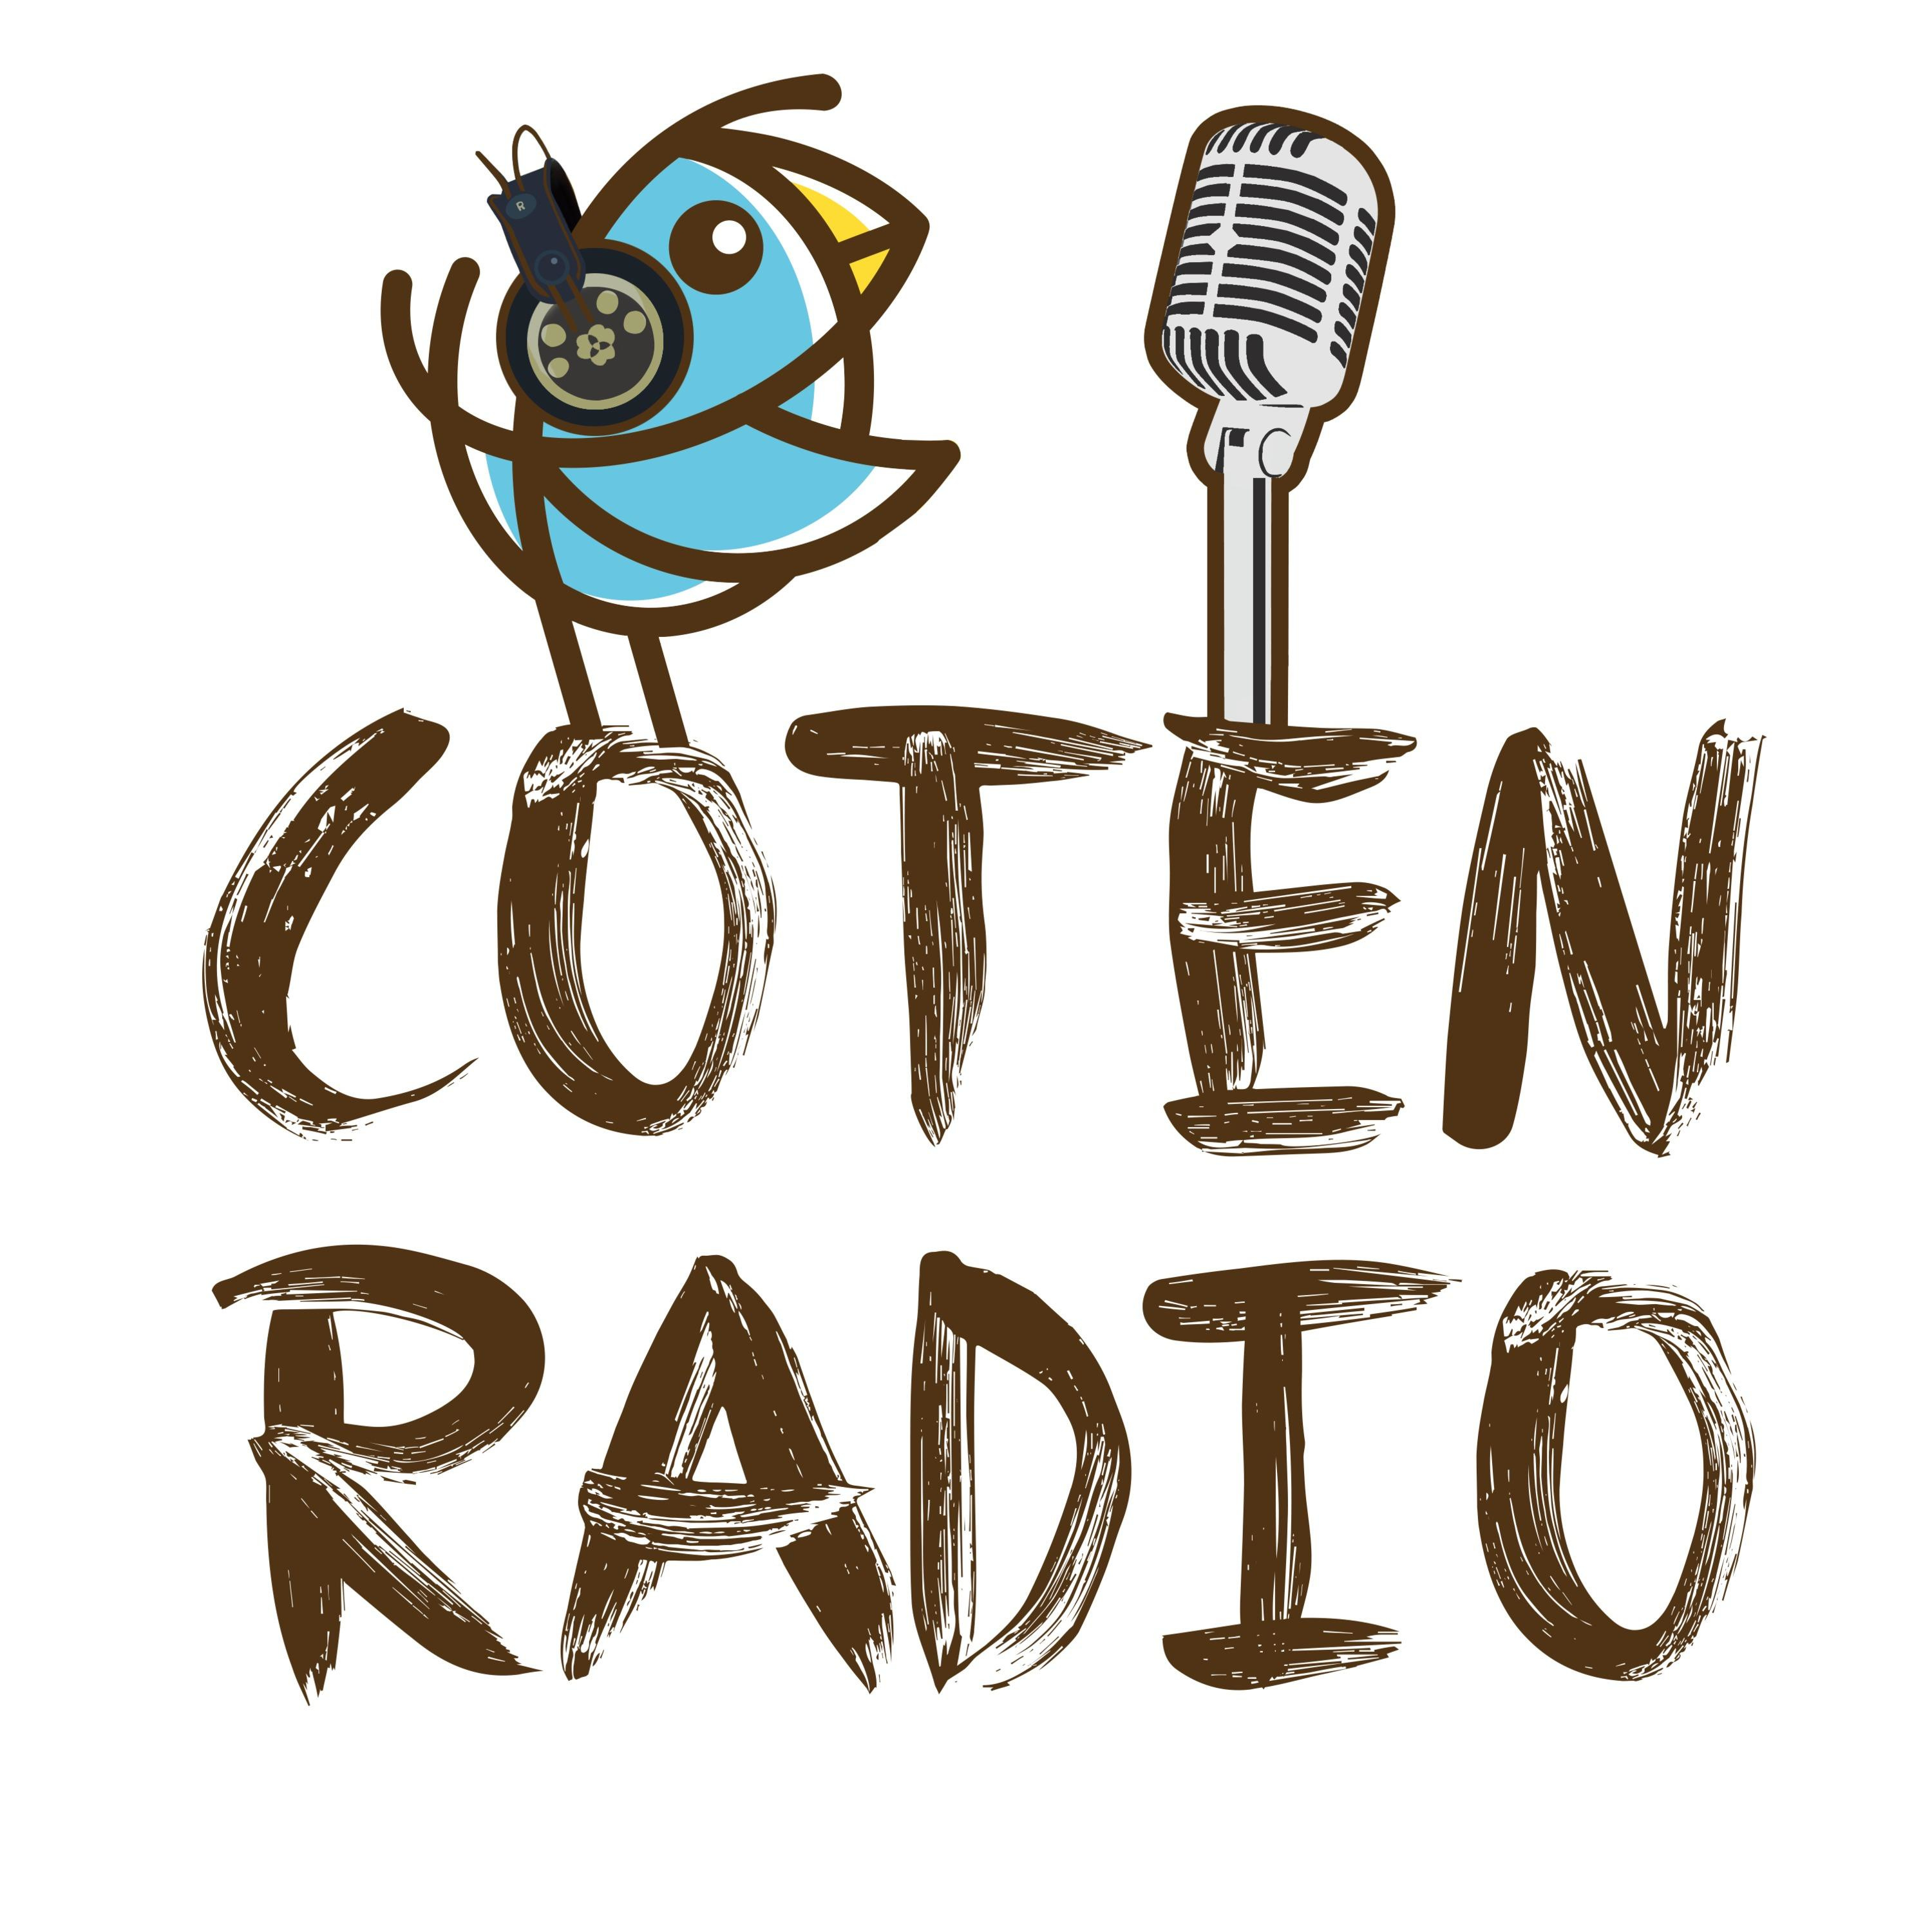 #102 Join, or Die!― アメリカ、自由を求めて独立へ【COTEN RADIO】